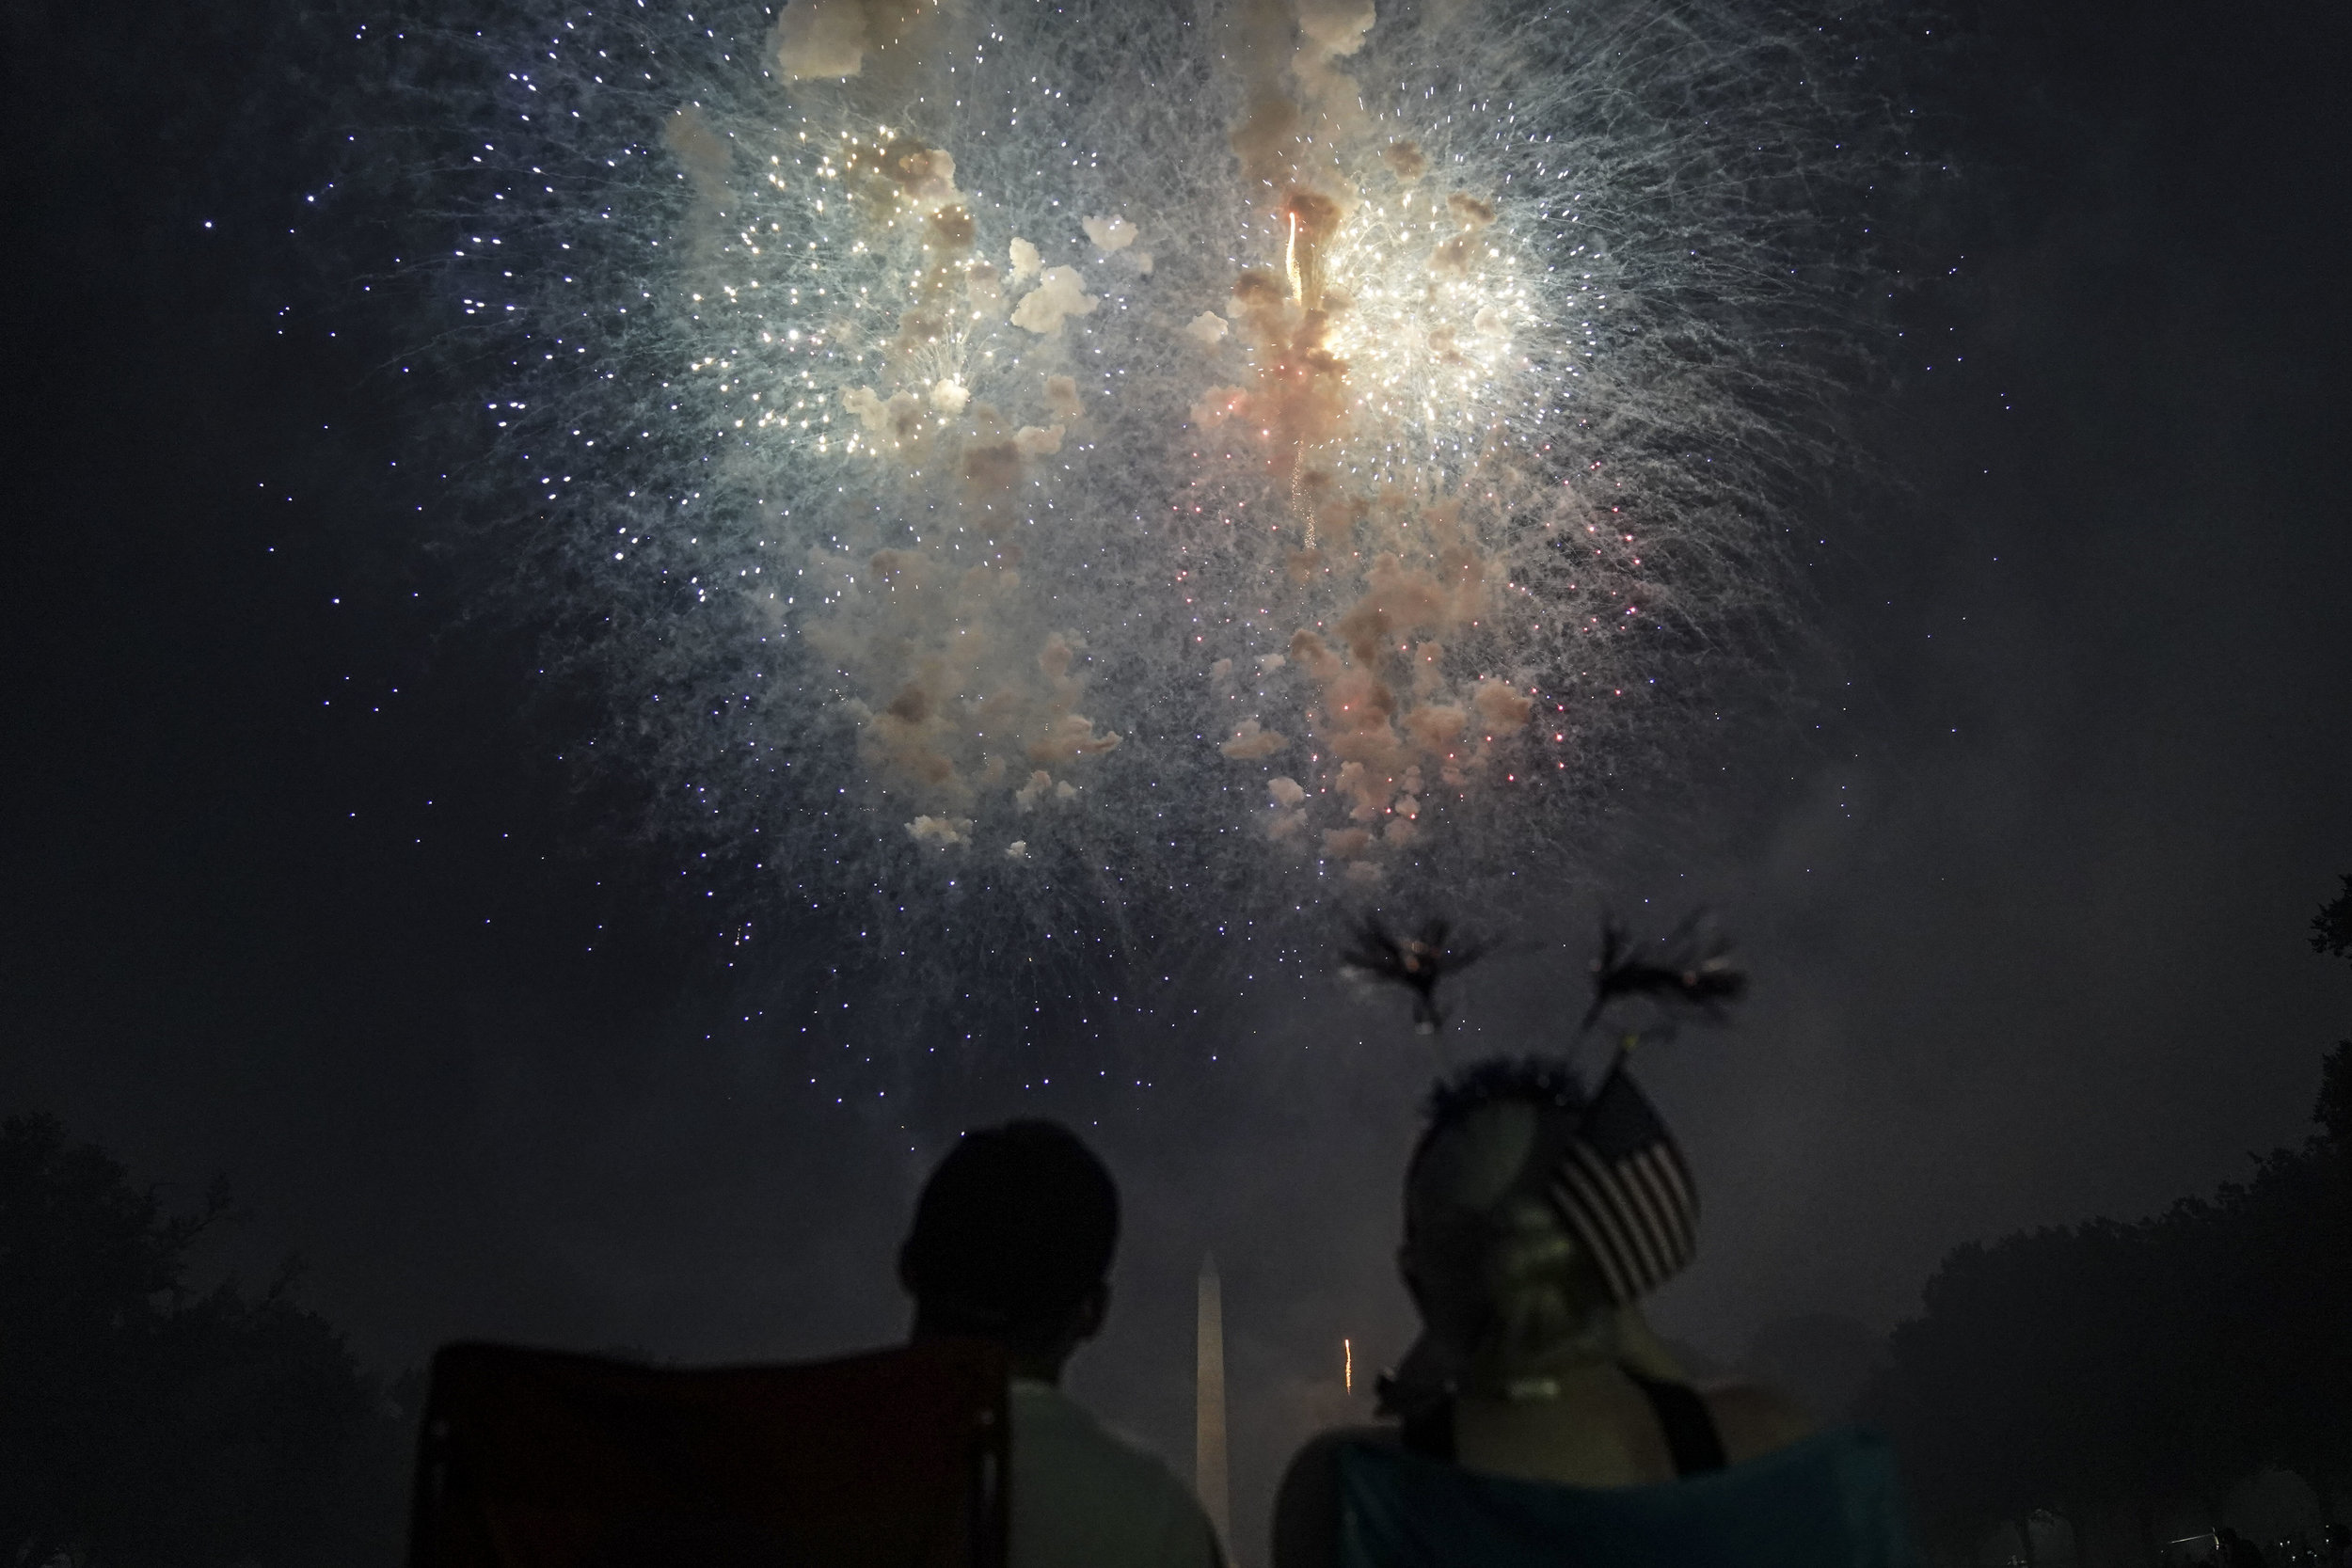 People watch fireworks during the 4th of July Independence Day celebrations at the National Mall in Washington.